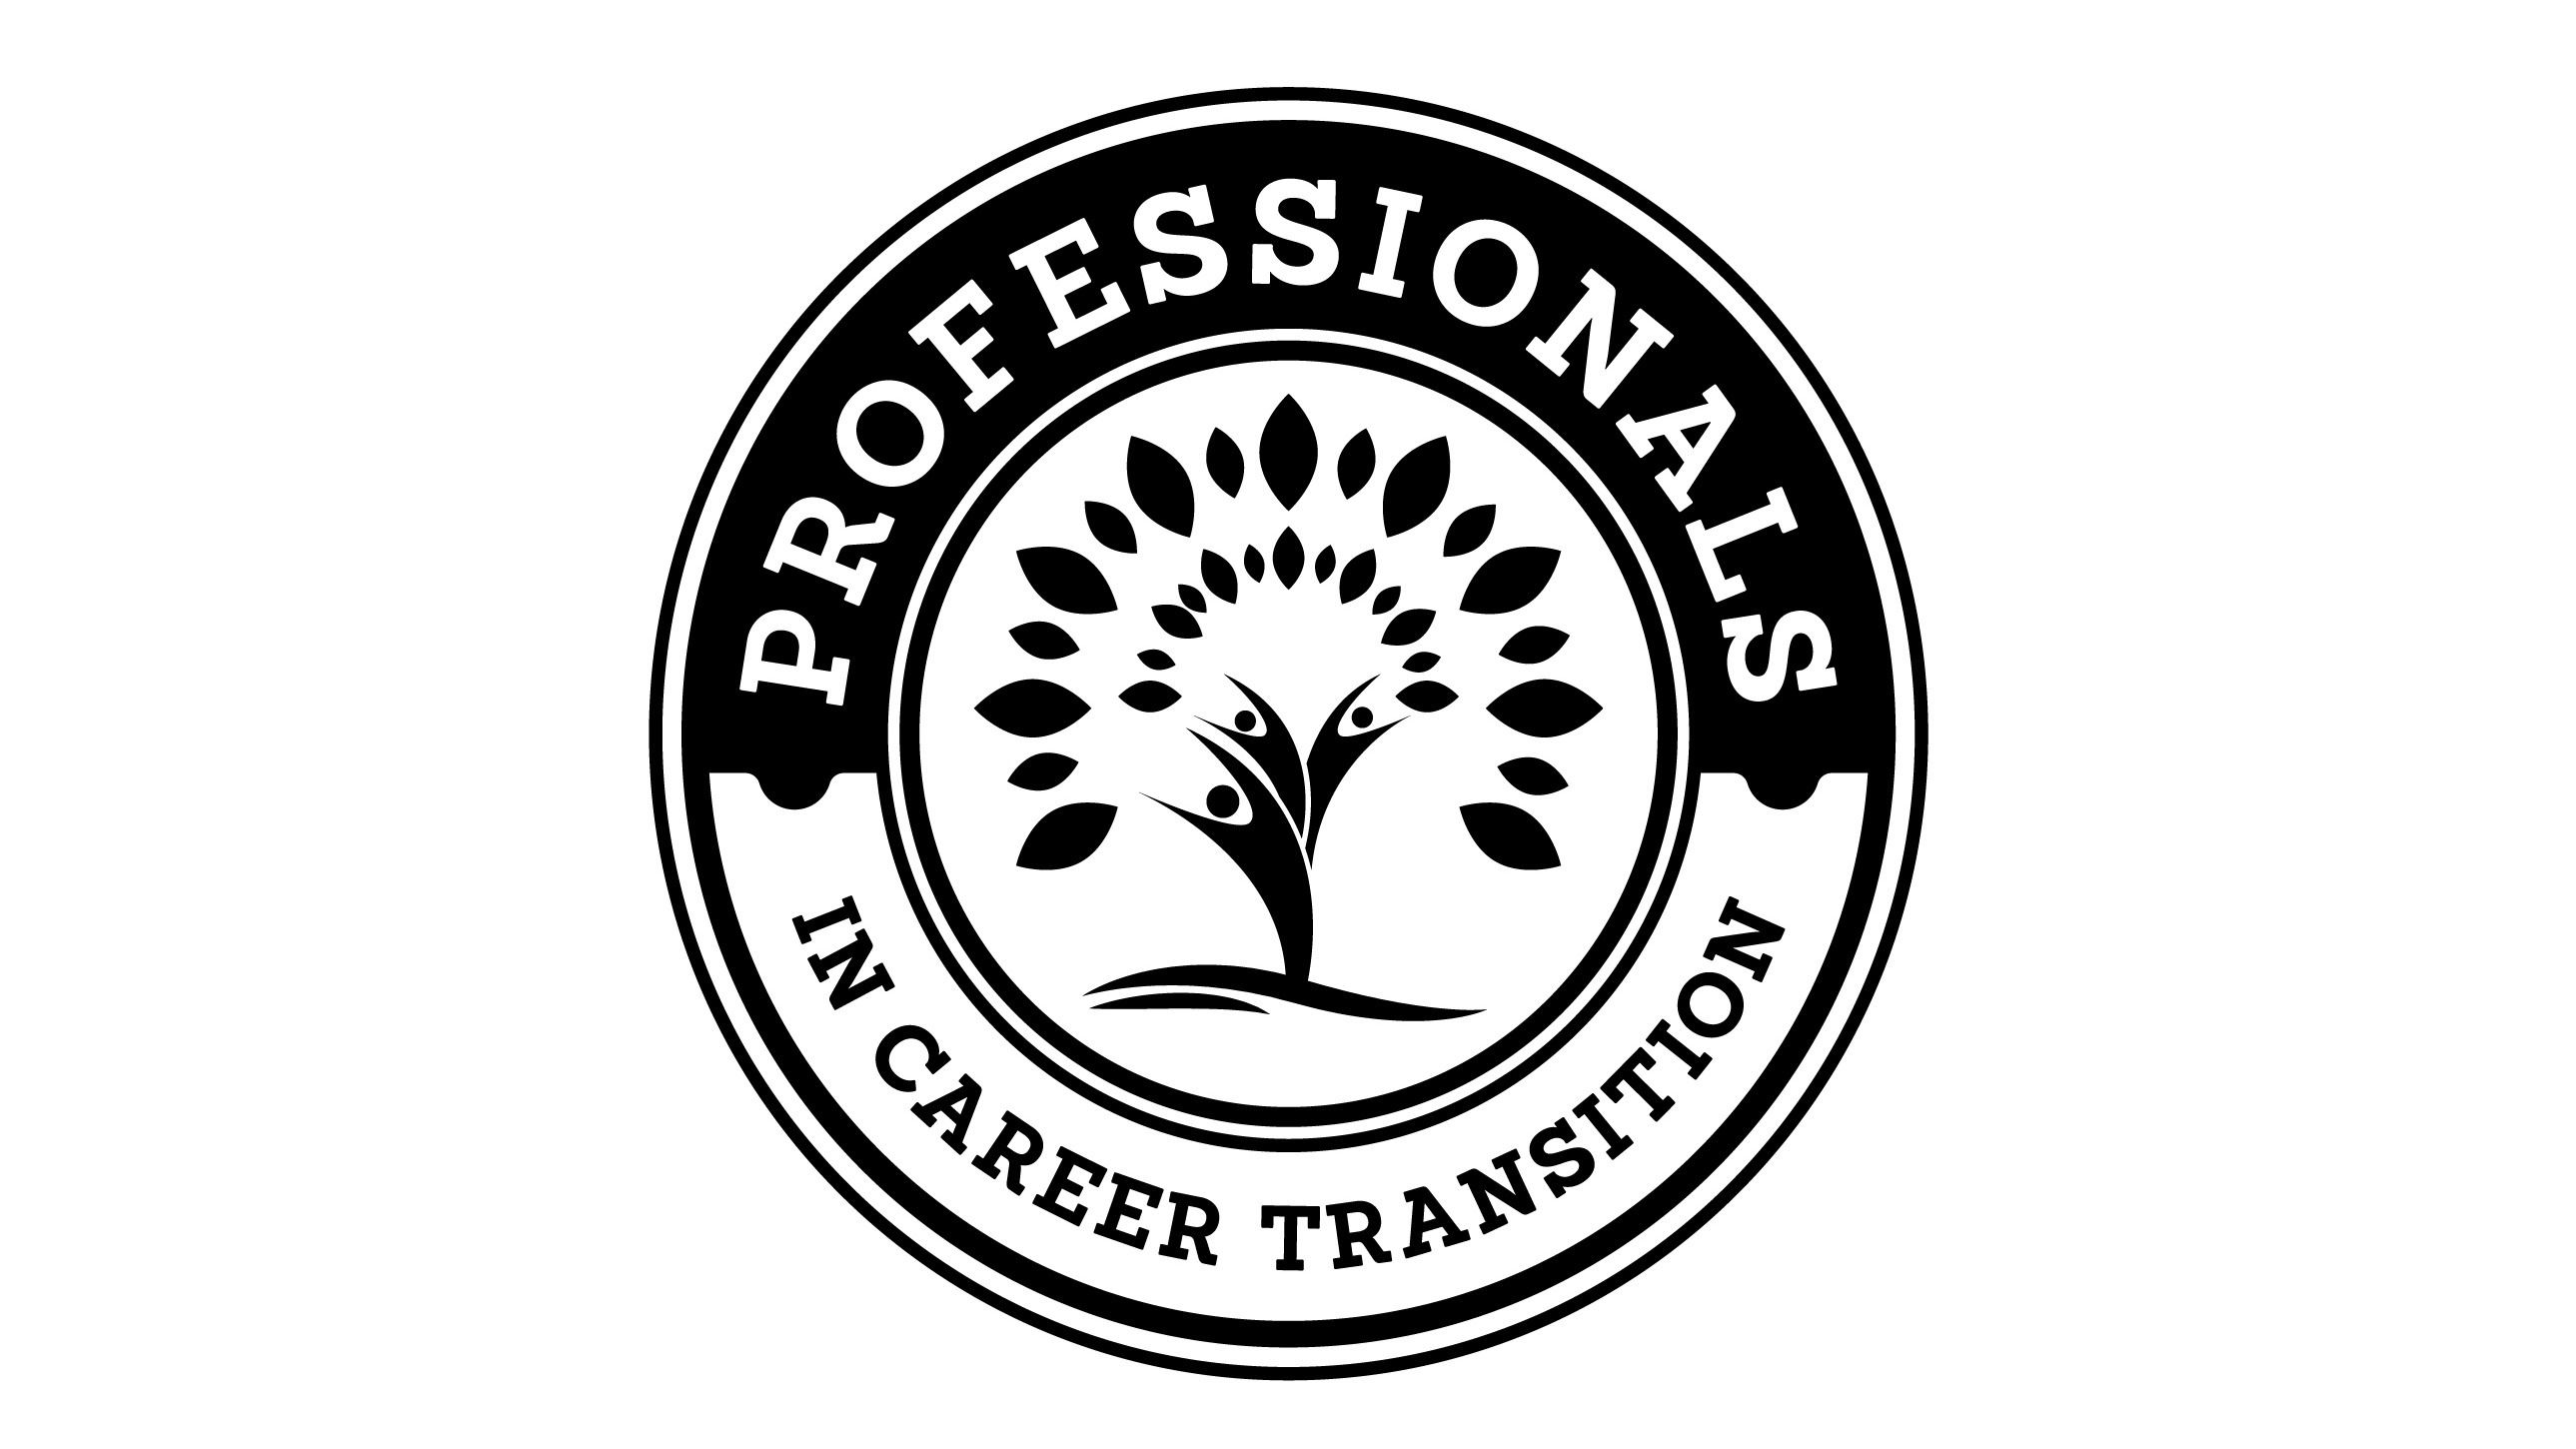 Professionals in Career Transition